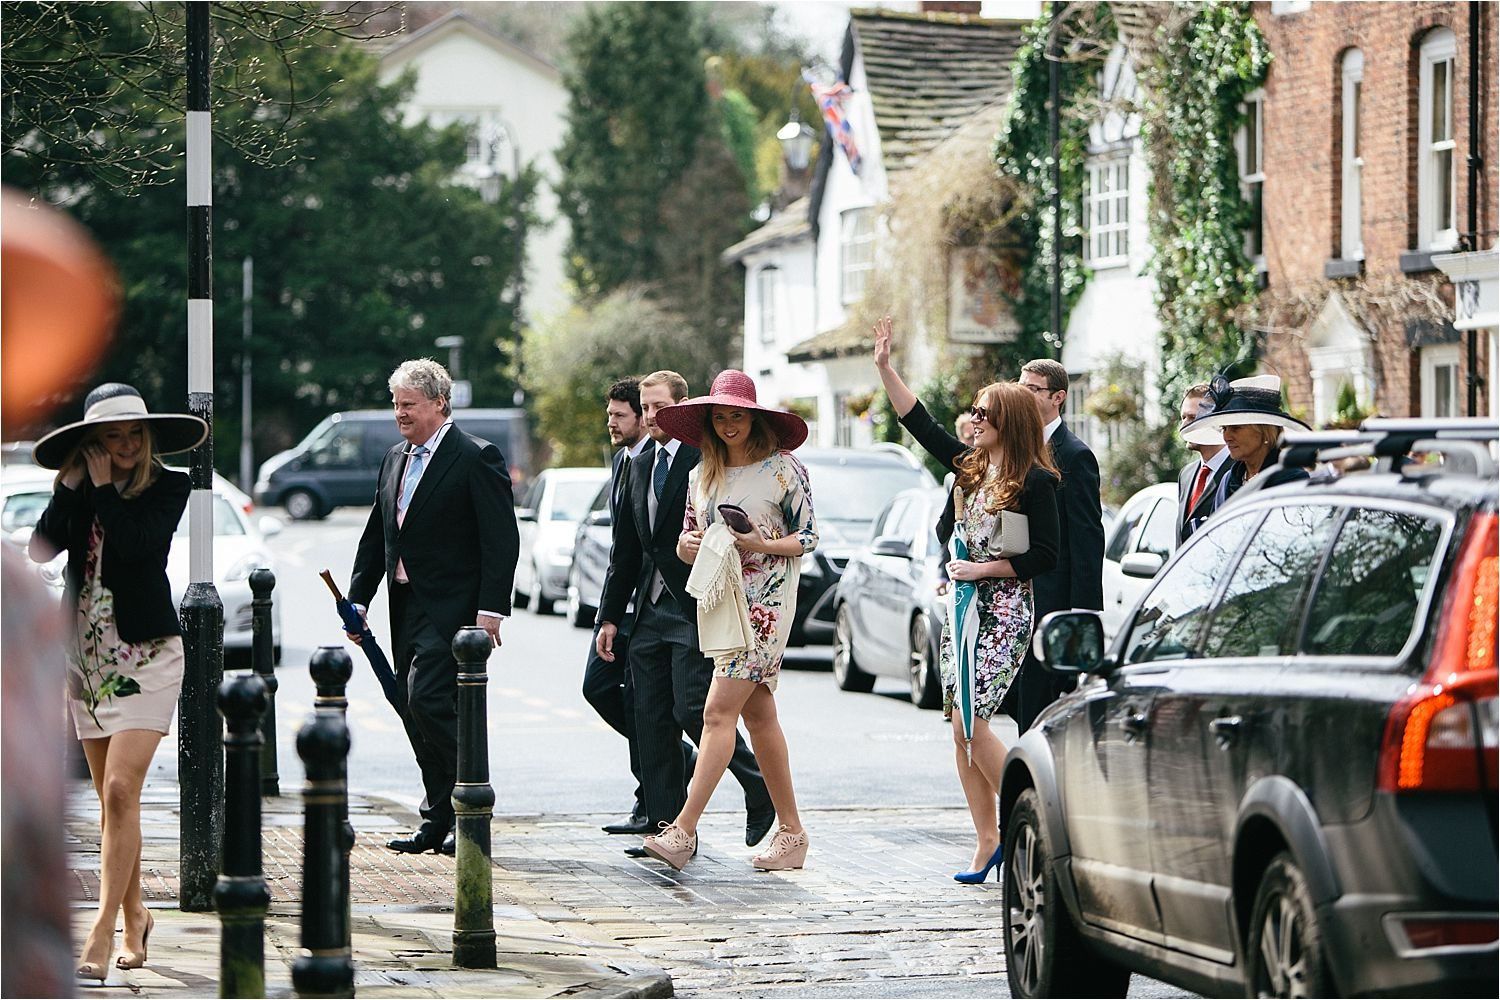 Guests arriving for Cheshire wedding in Prestbury